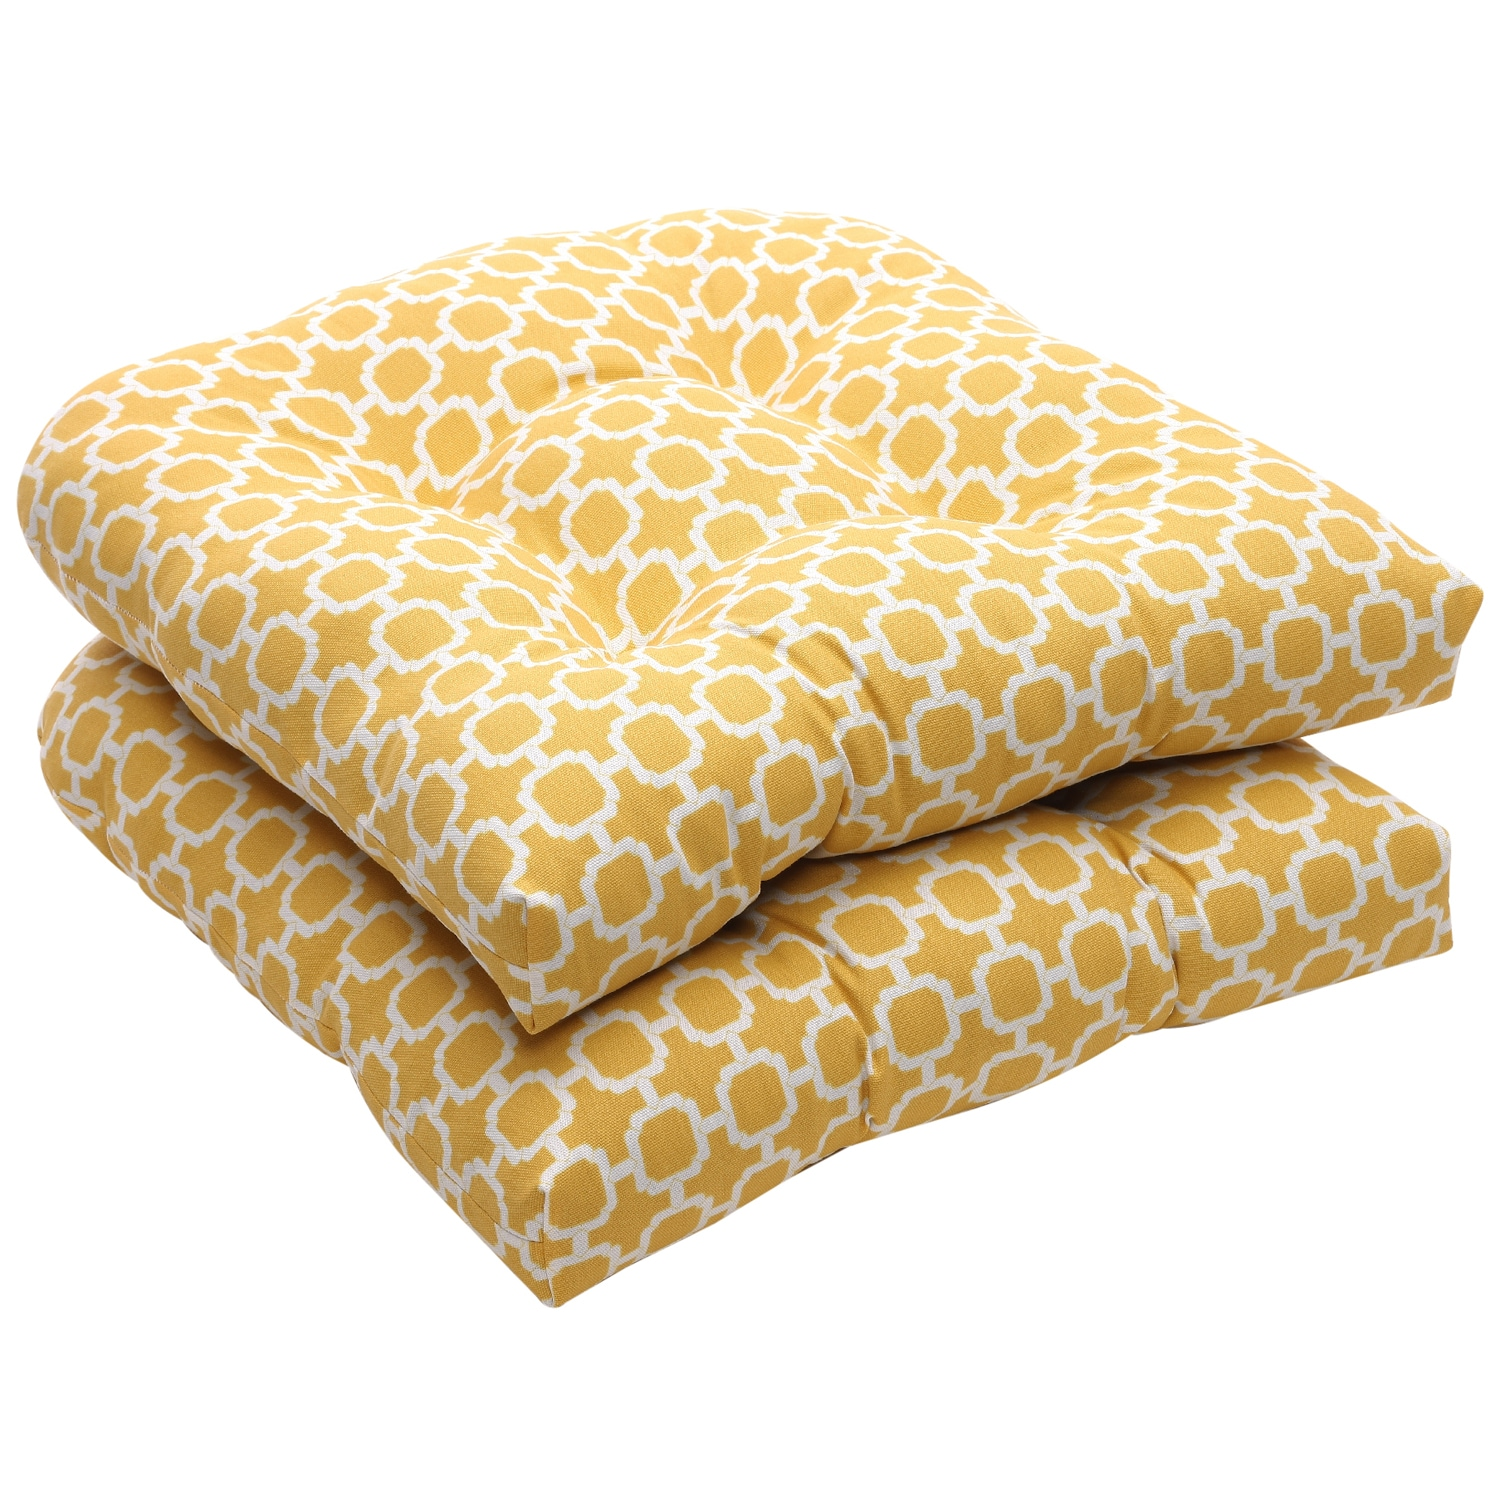 Outdoor Yellow and White Geometric Wicker Seat Cushions (Set of 2)